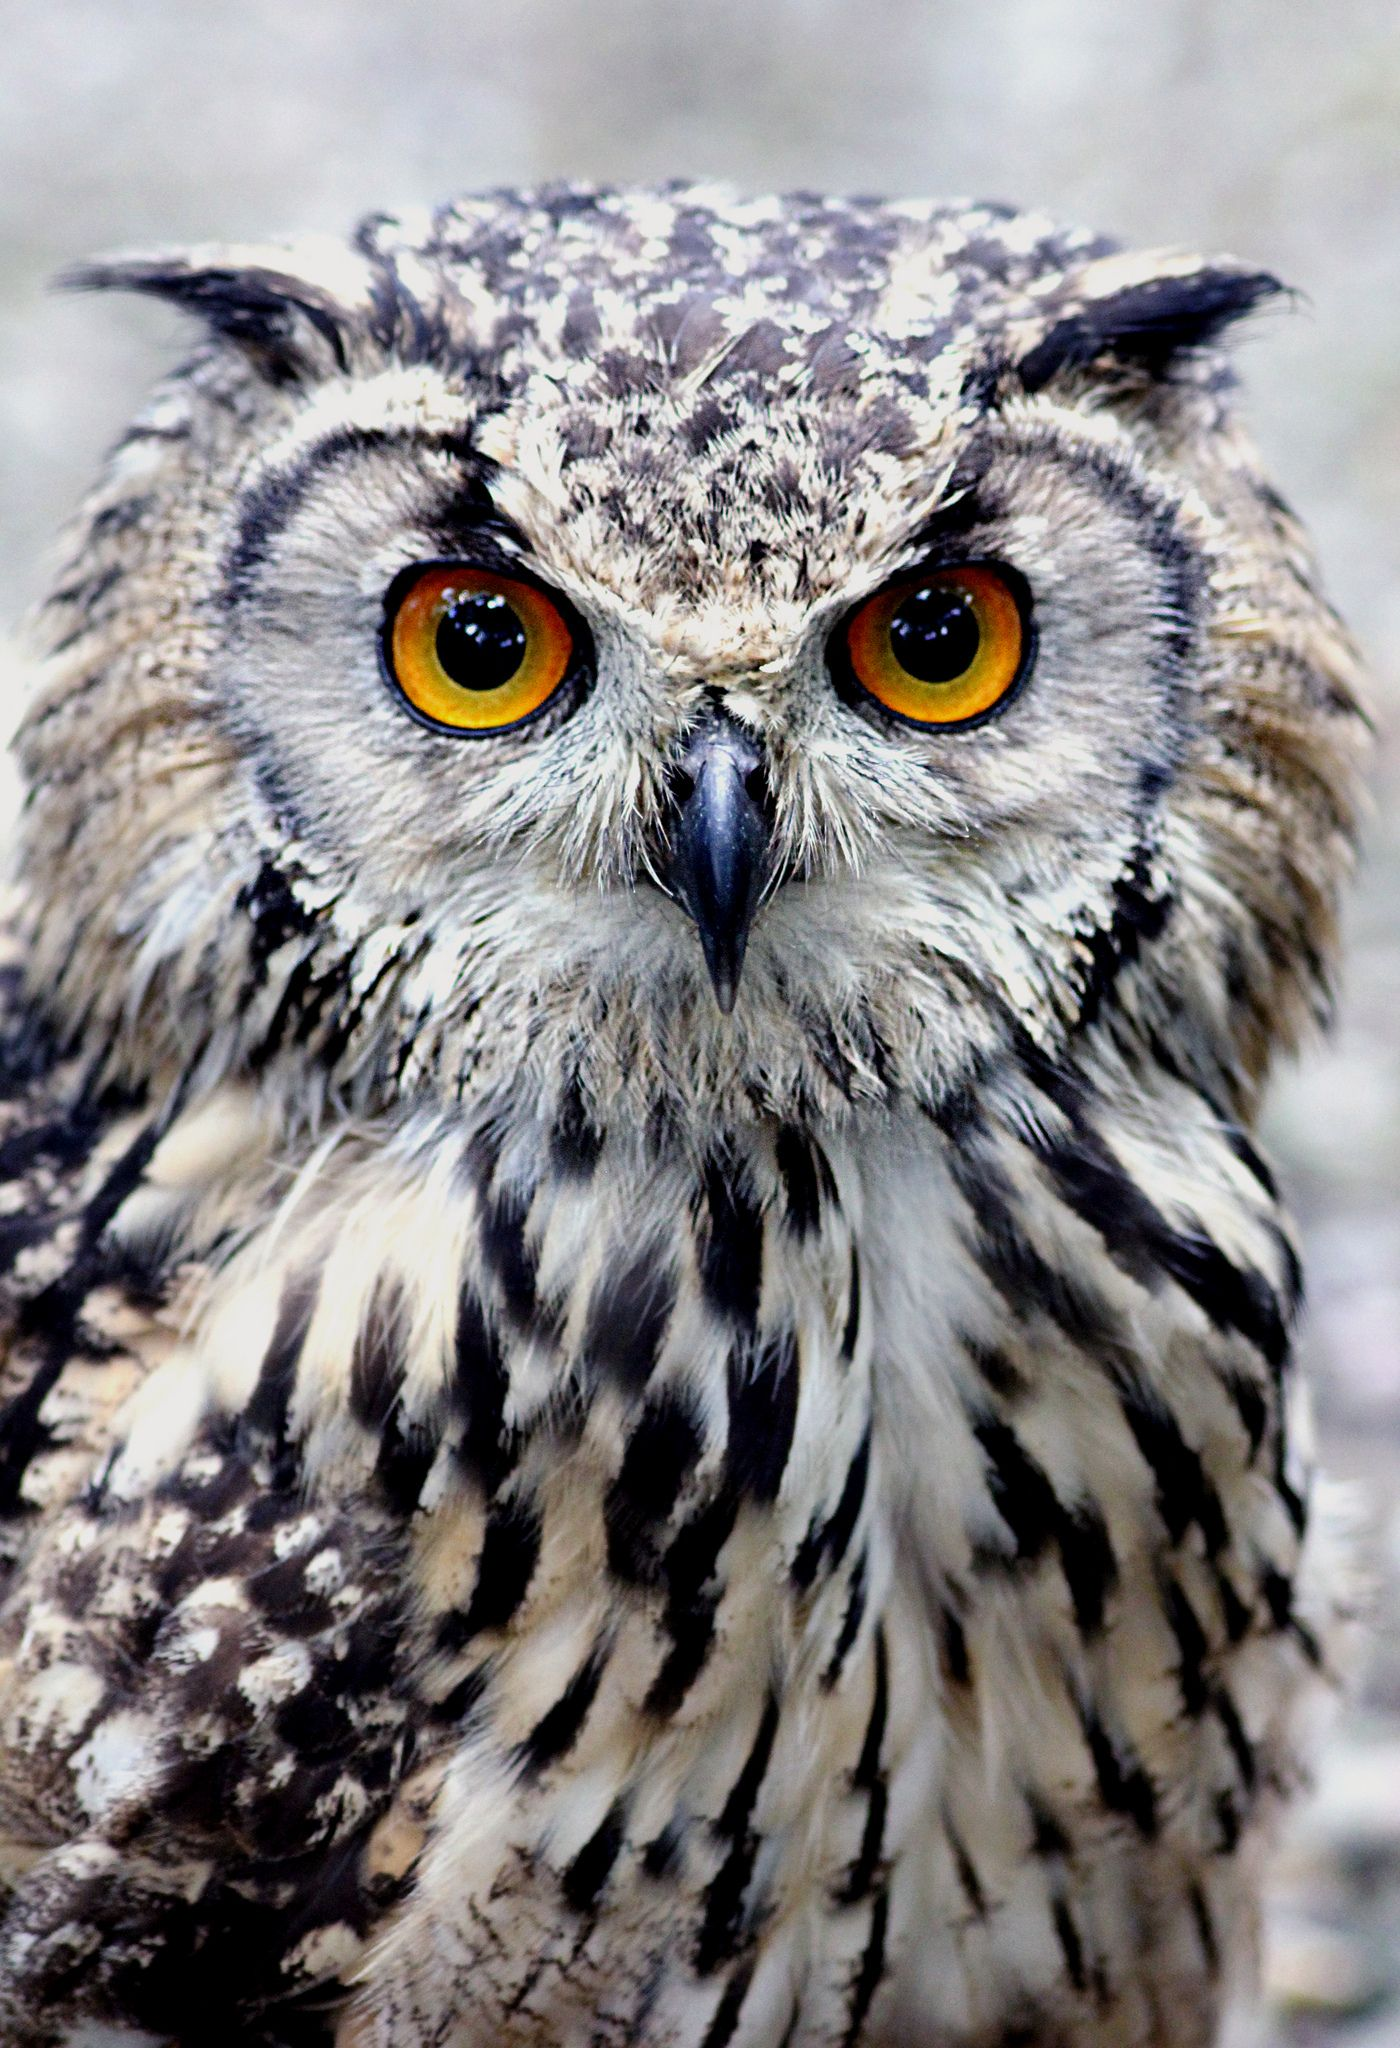 An owl is a nocturnal animal that you will be able to